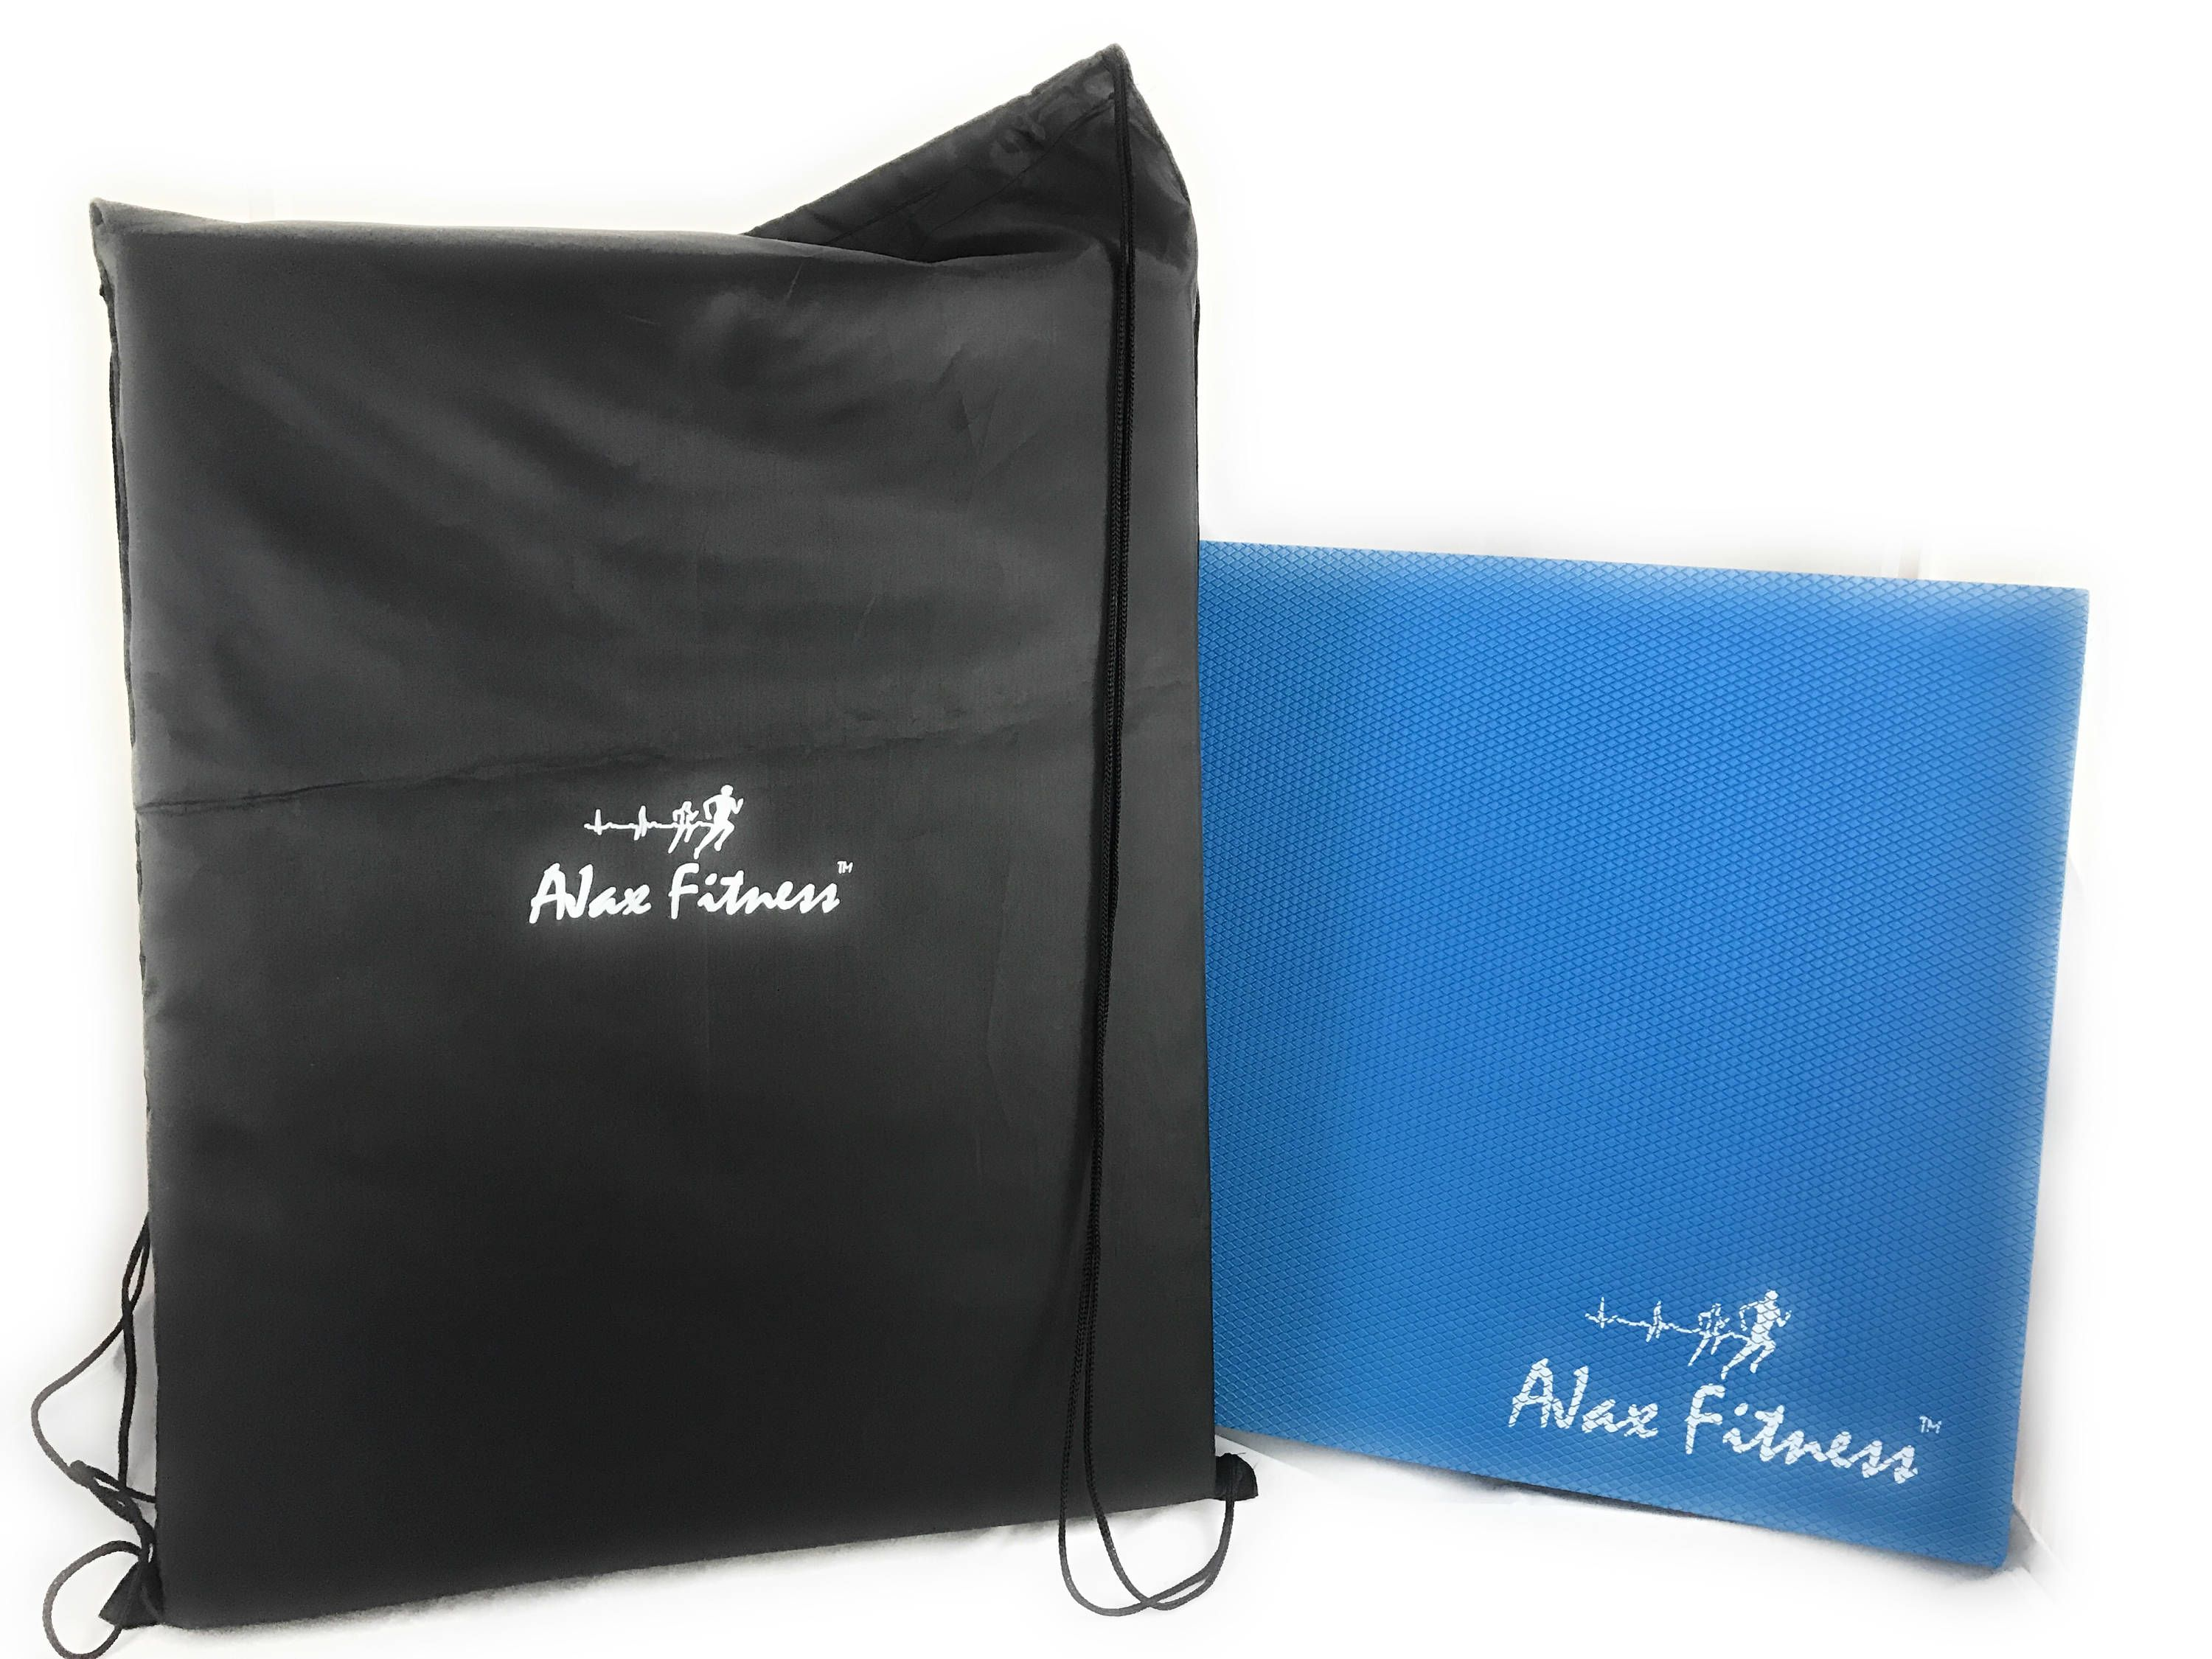 Multiuse balance pad and foam cushion with carrying bag